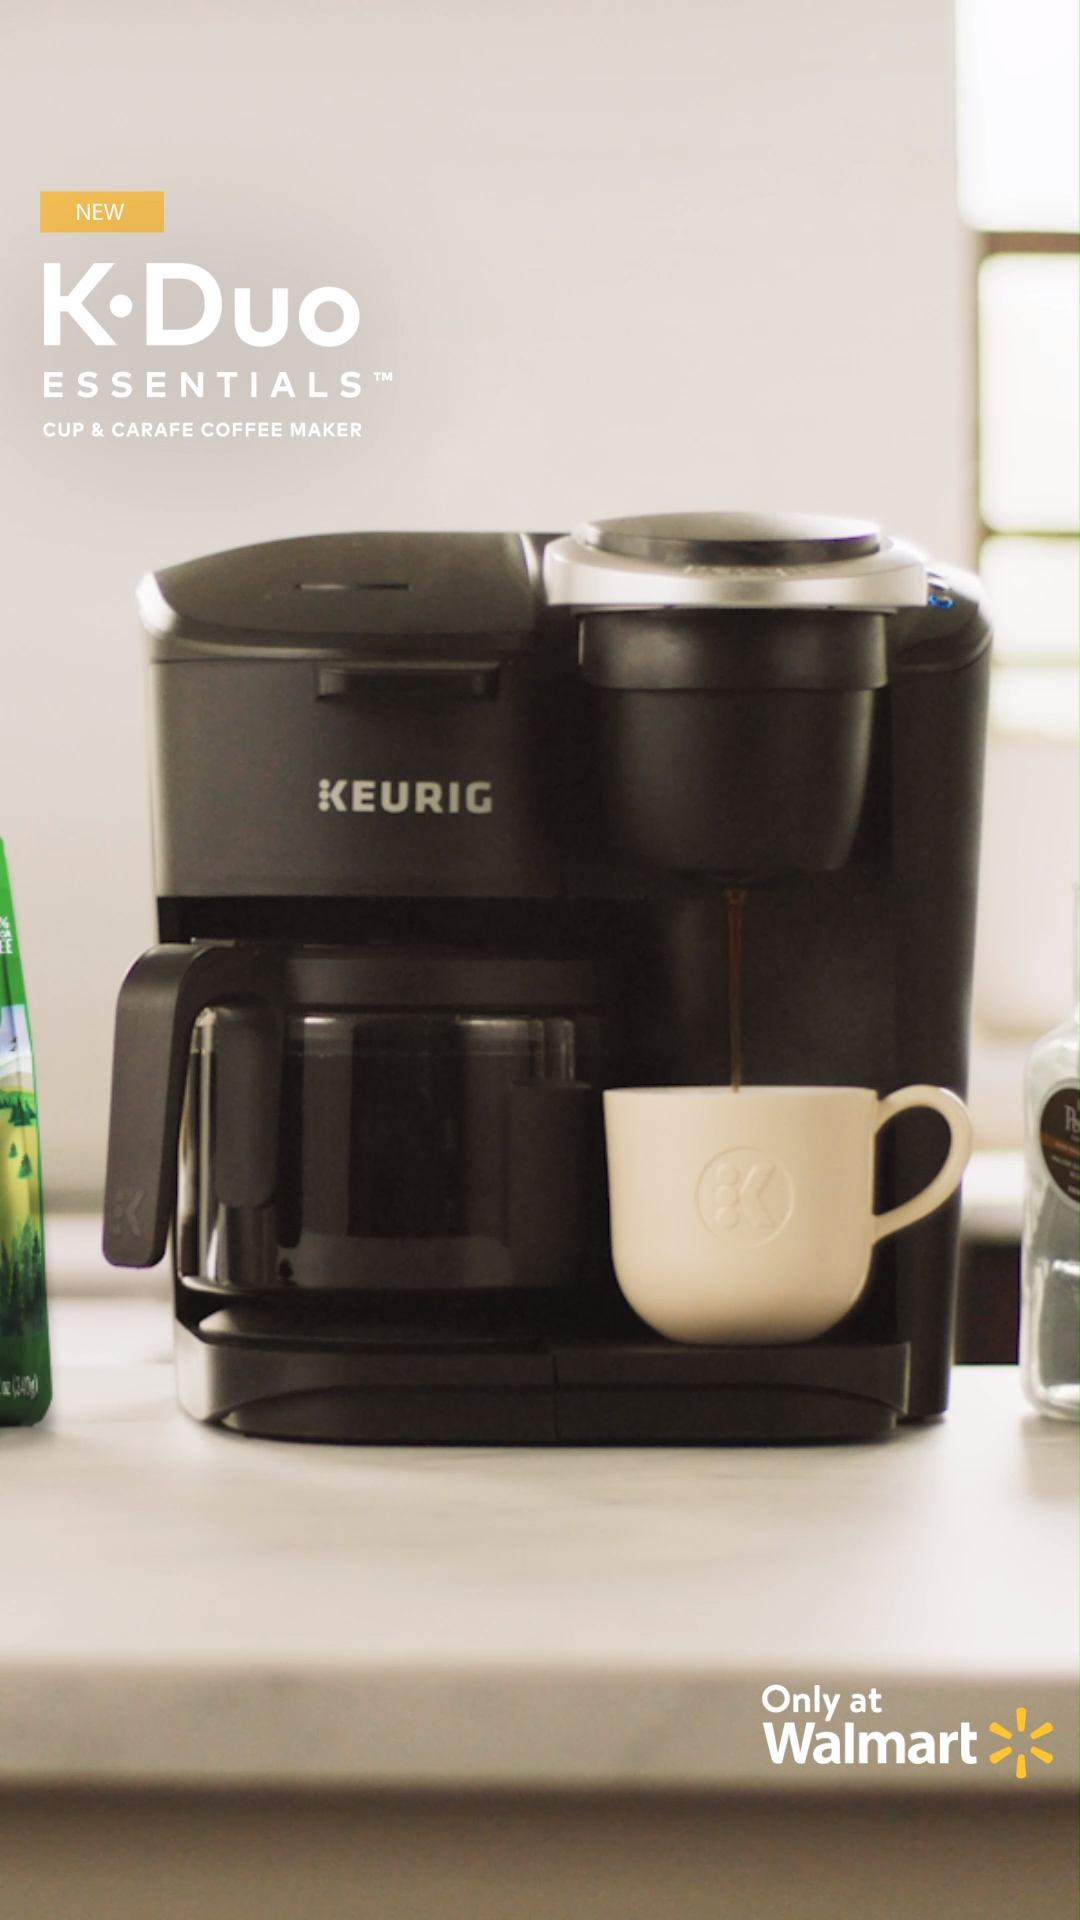 Introducing the new K-Duo Essentials brewer, our all-in ...